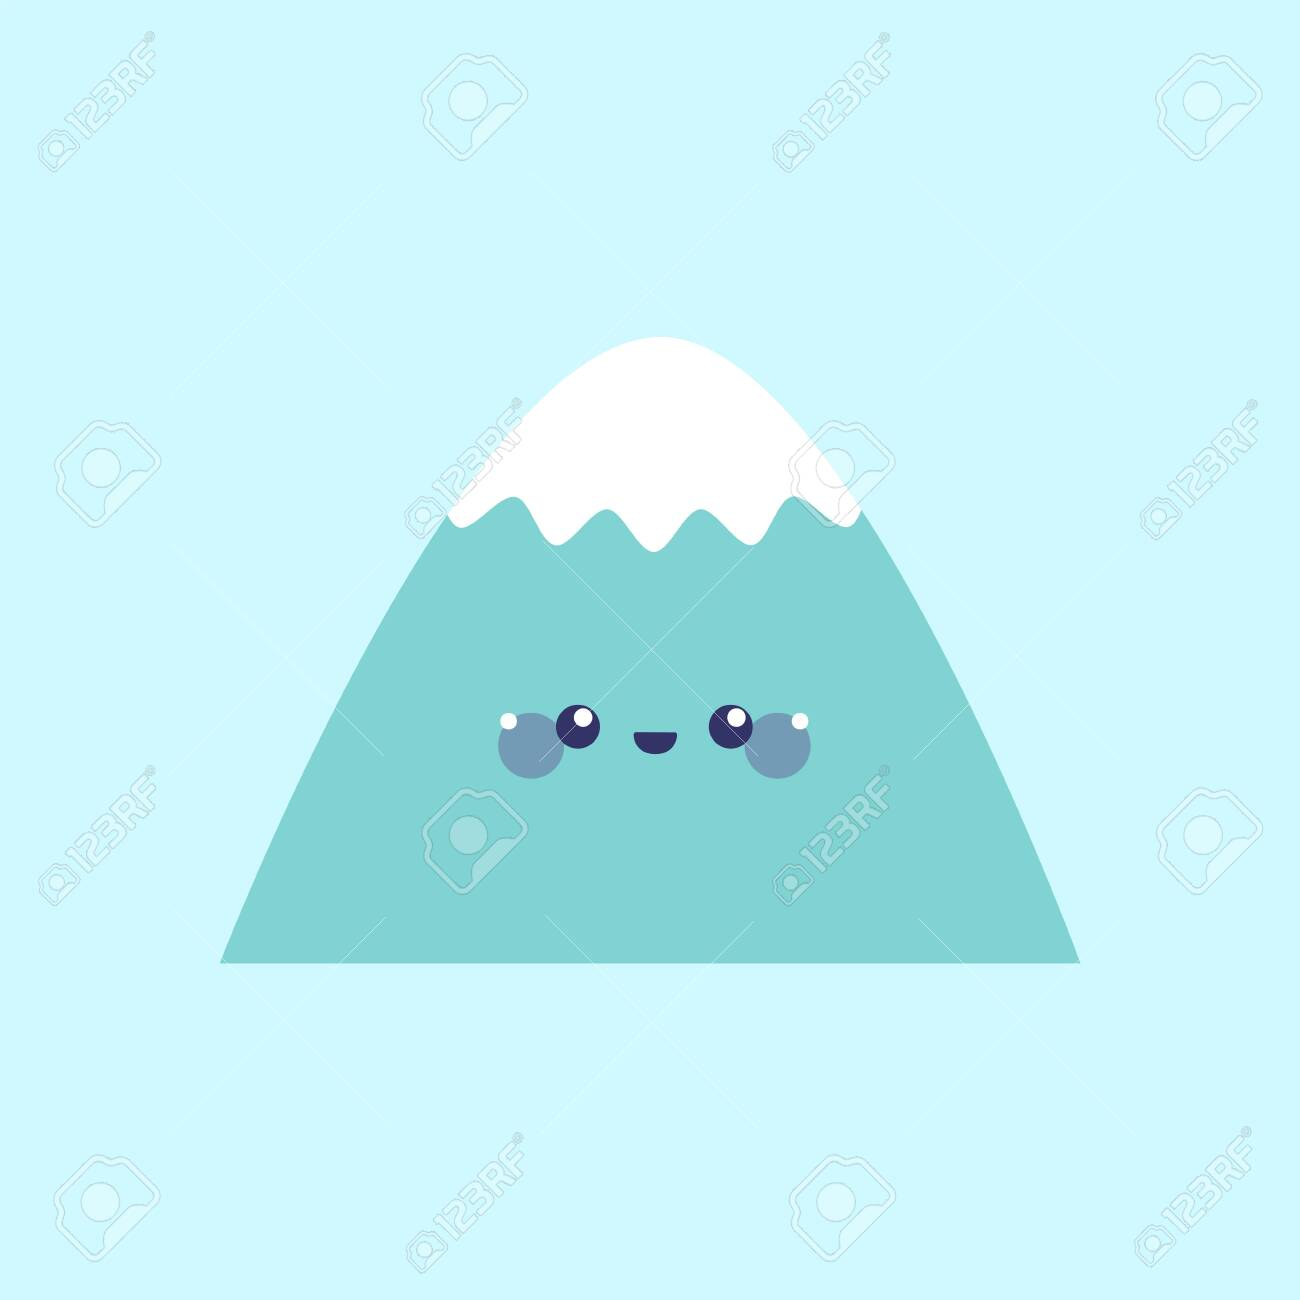 Cute mountain. Simple vector illustration in flat style - 149658410